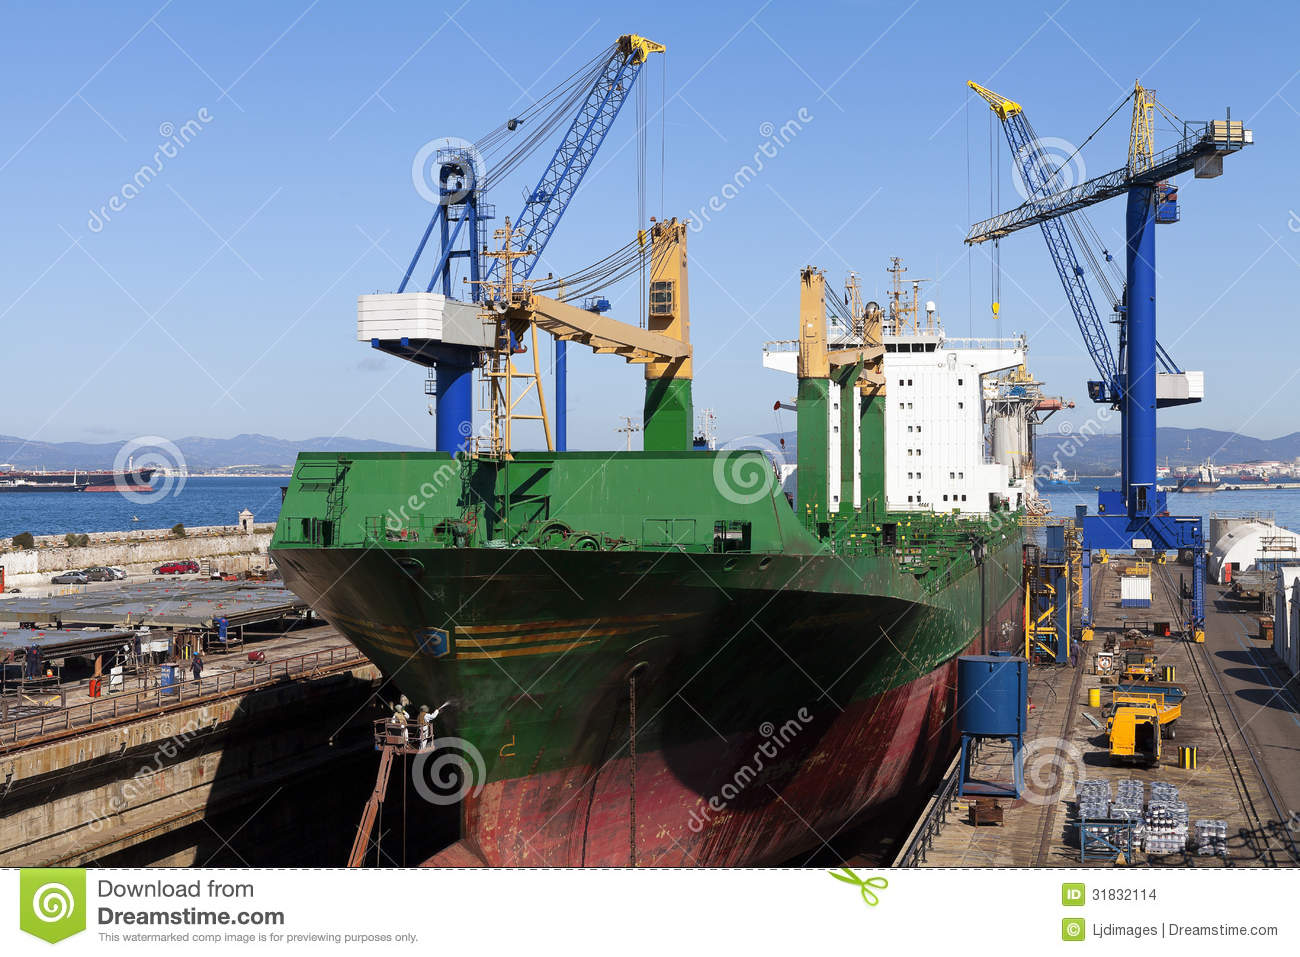 Ship In Dry Dock For Repairs Stock Images   Image  31832114